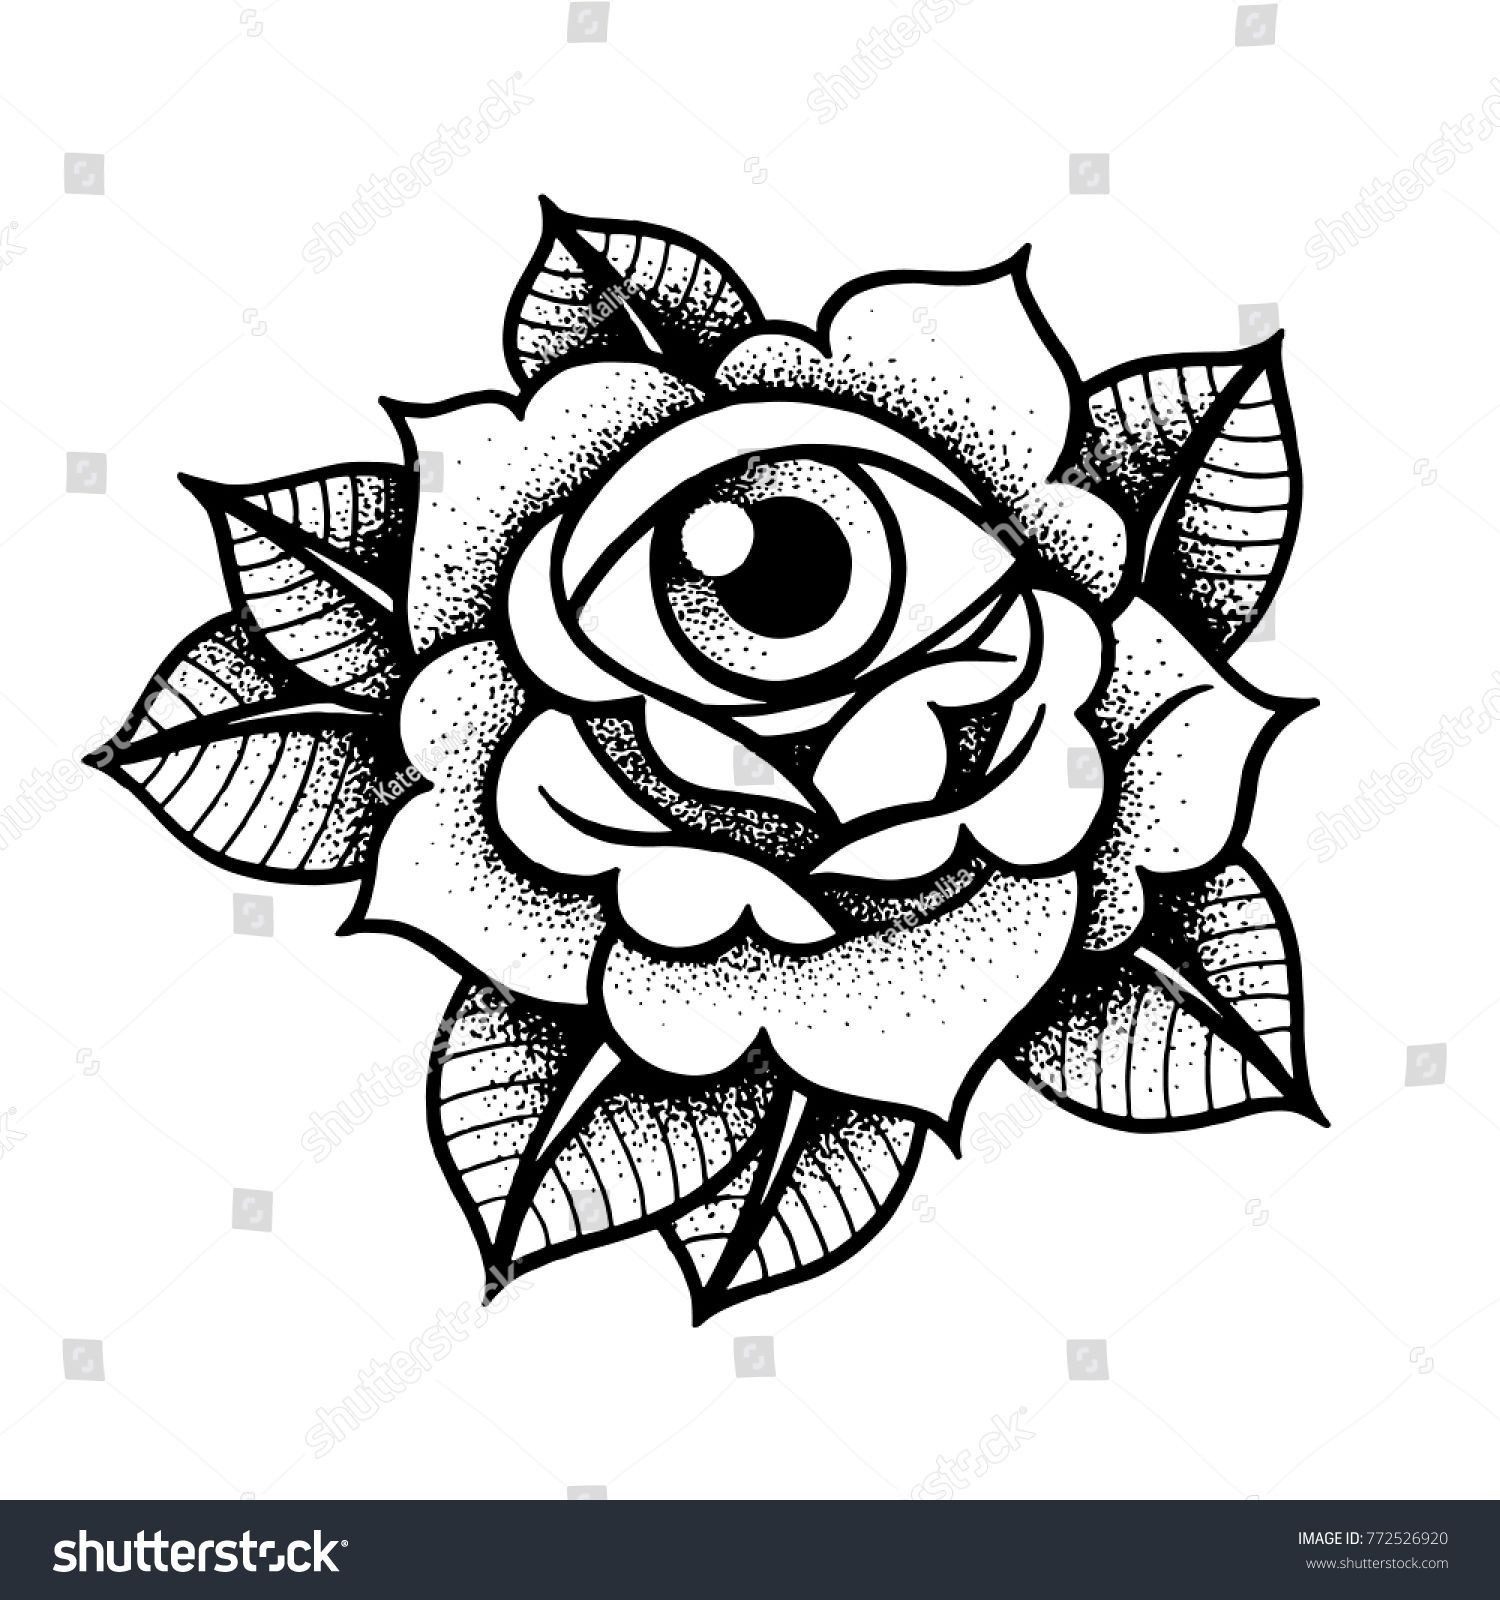 Old school rose tattoo with eye. Traditional black dot